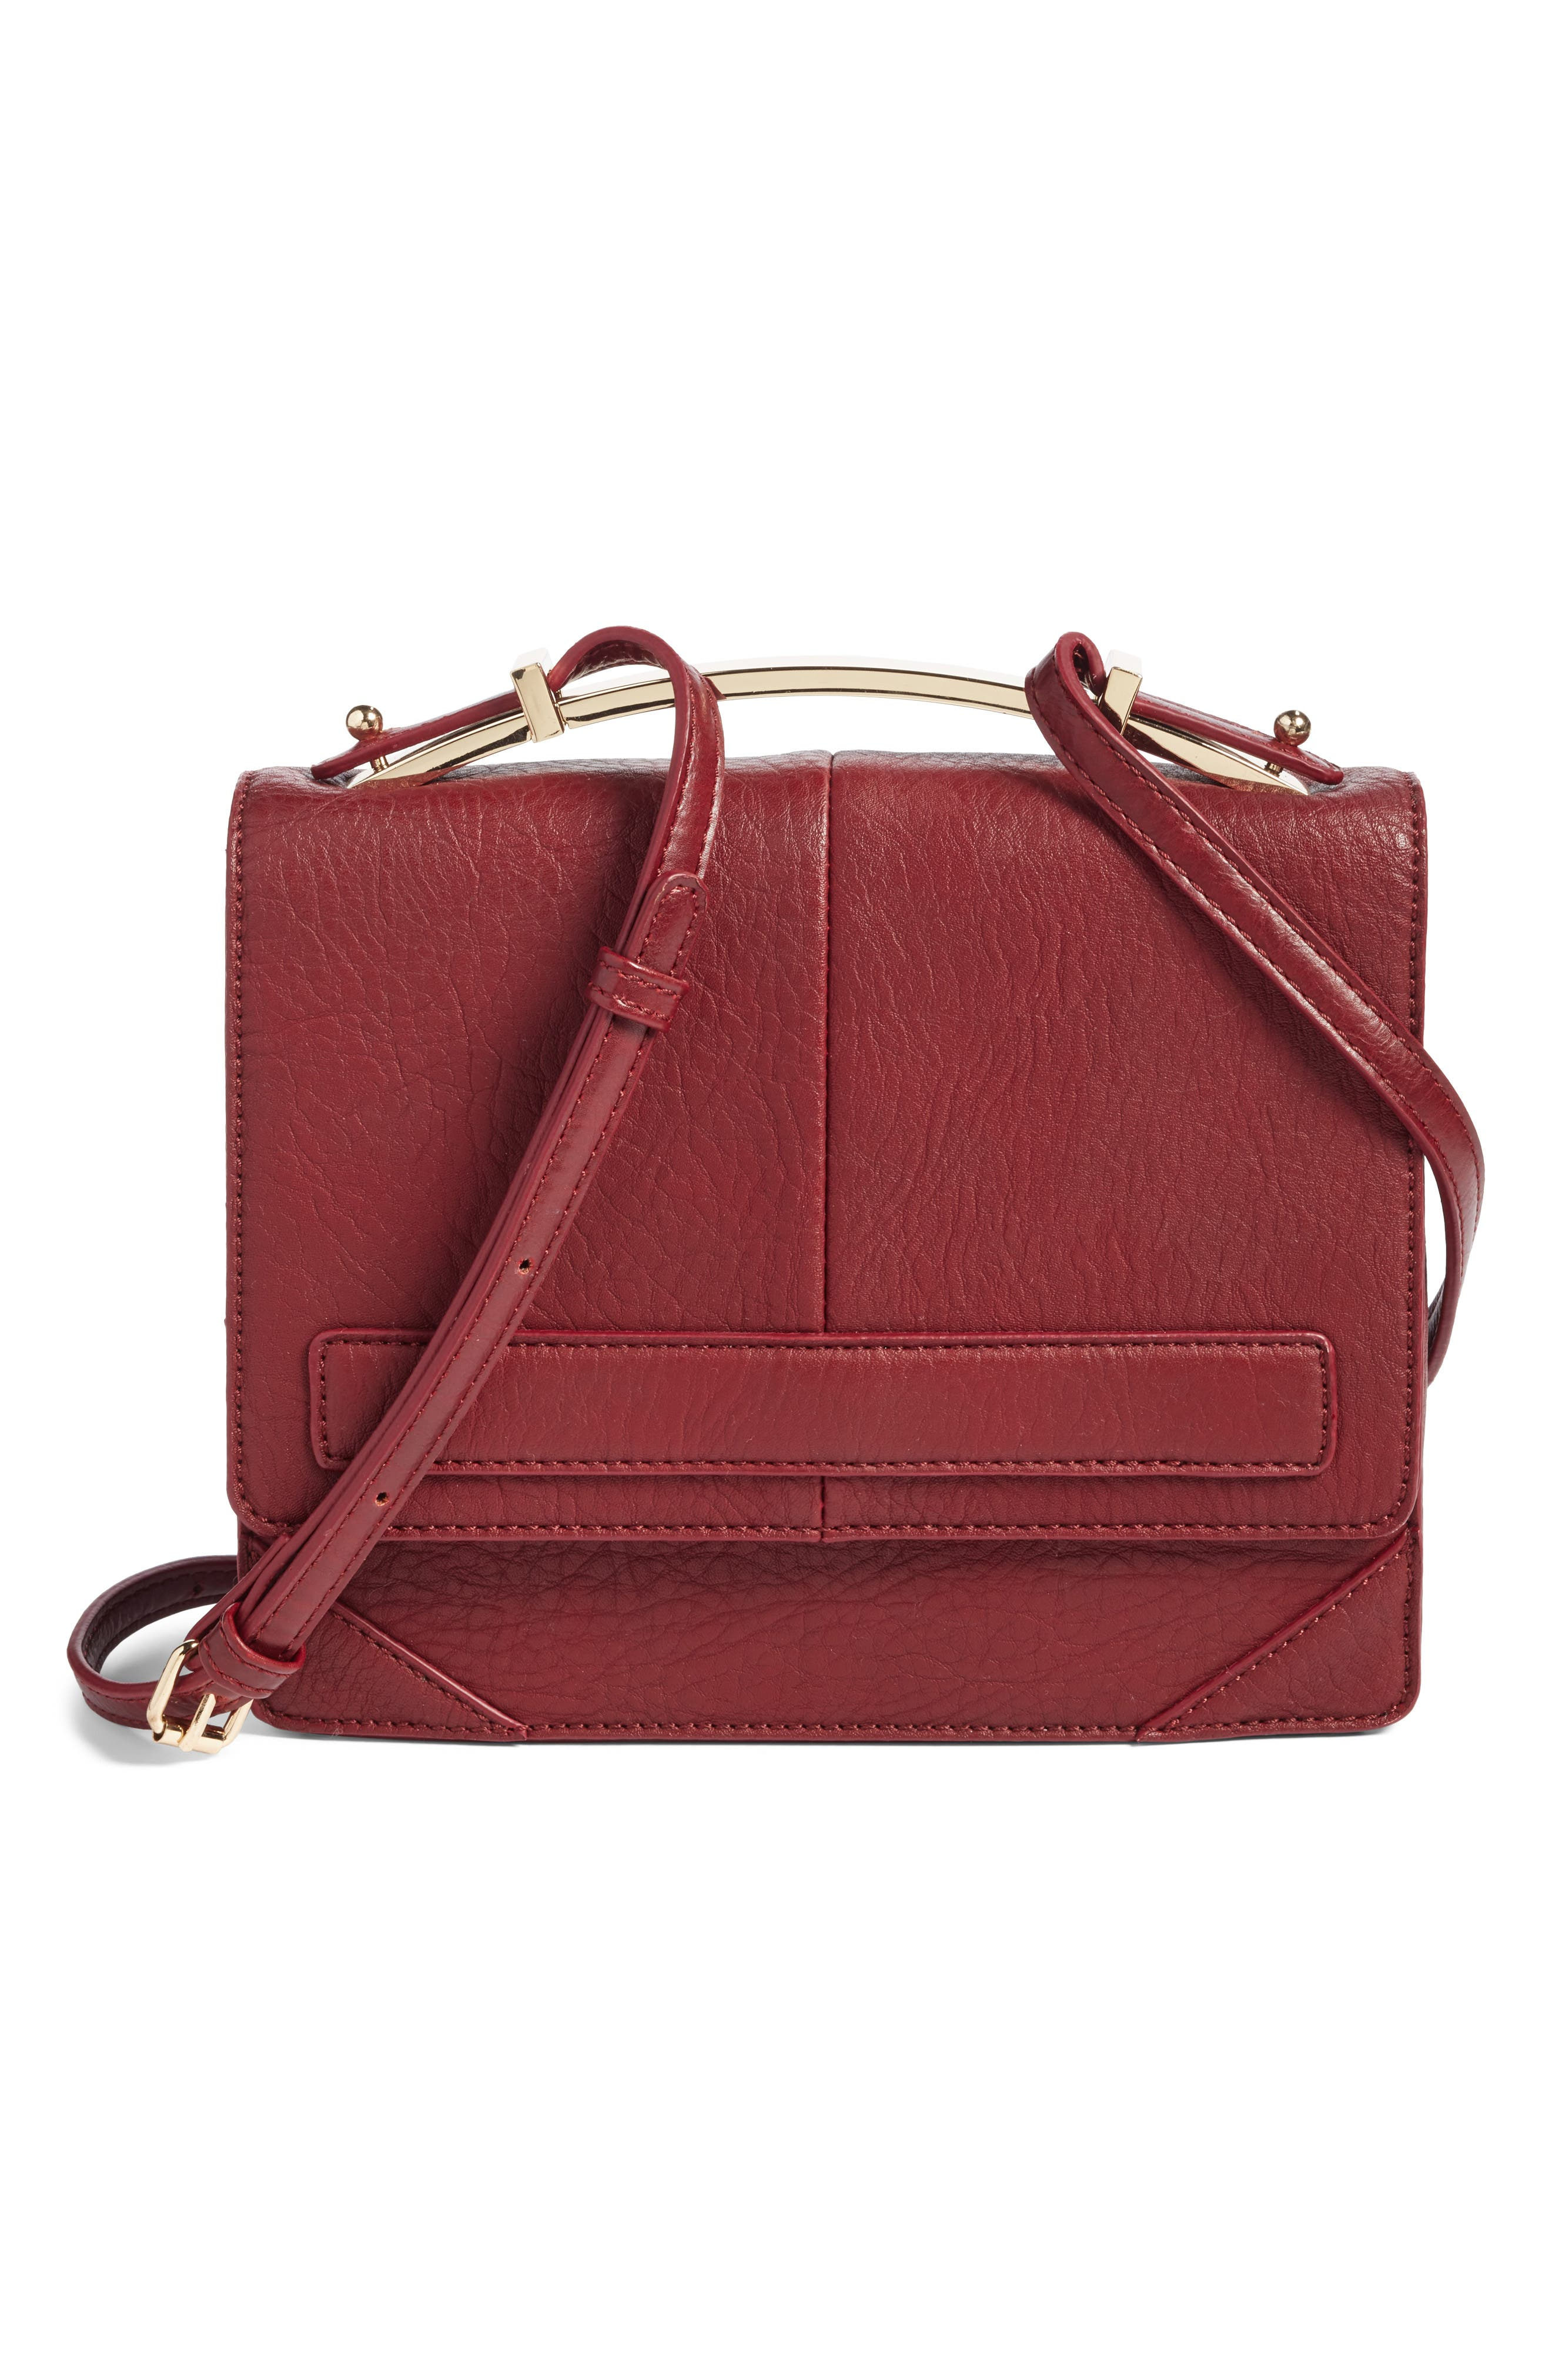 Alternate Image 1 Selected - Sole Society Krista Faux Leather Crossbody Bag